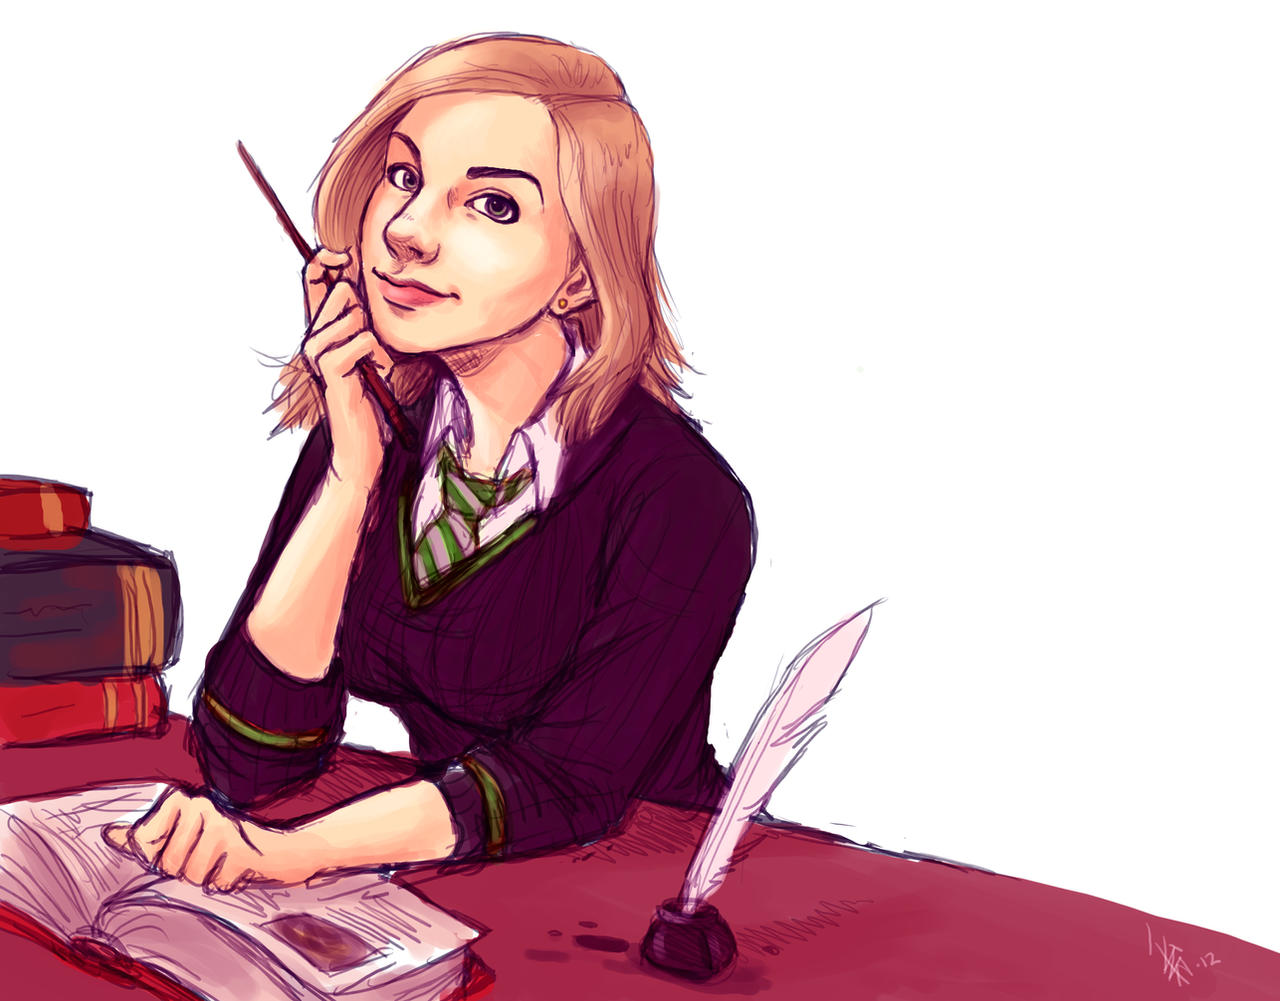 [Image: julie_as_a_slytherin_student_by_oomizuao-d5pln2j.jpg]